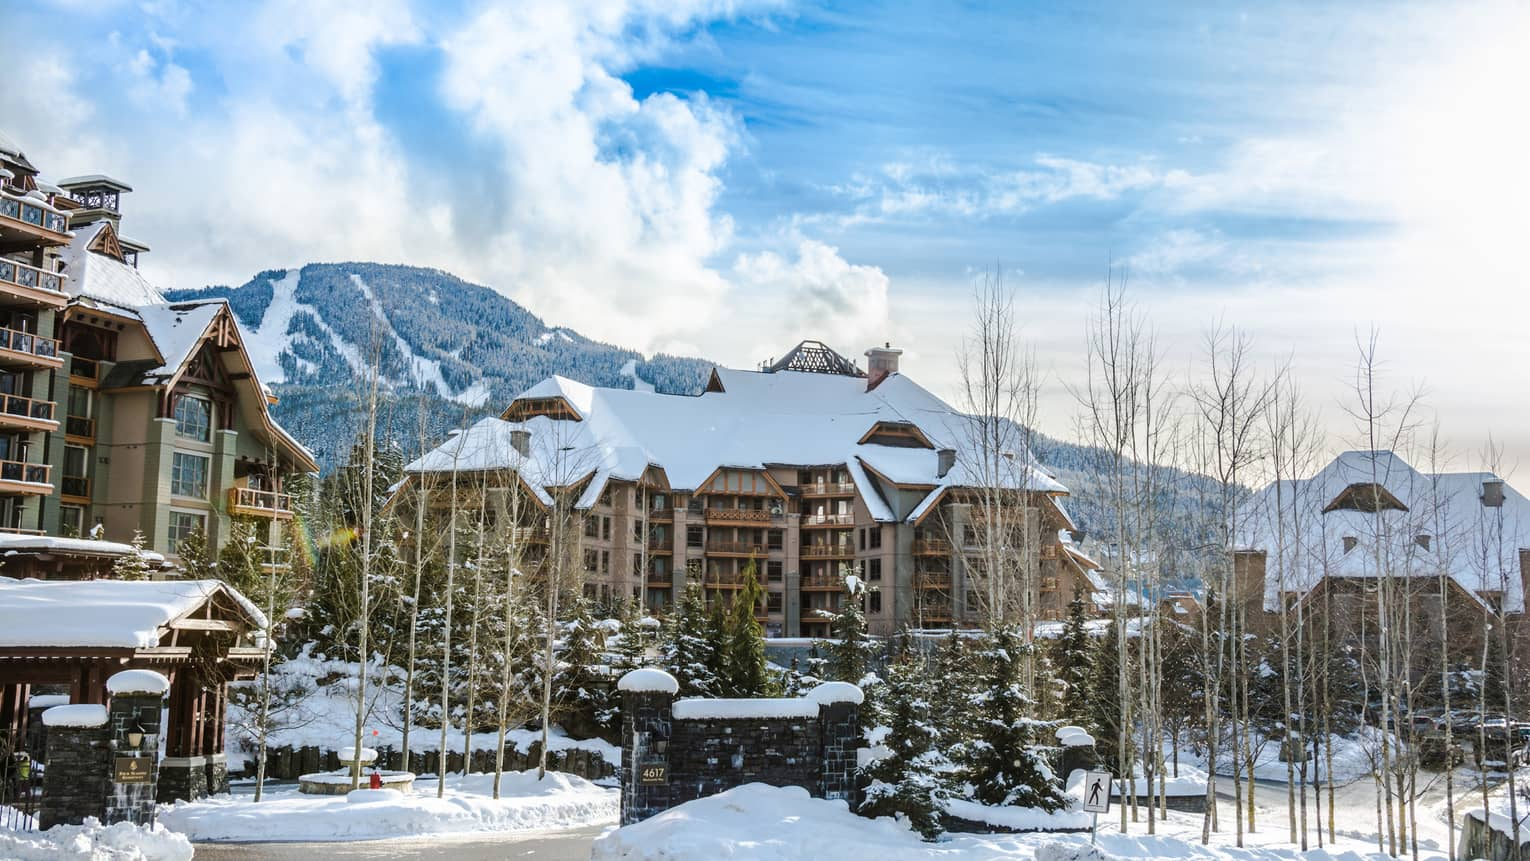 Exterior view of Four Seasons Whistler hotel with snow-covered roof in front of ski hill mountains